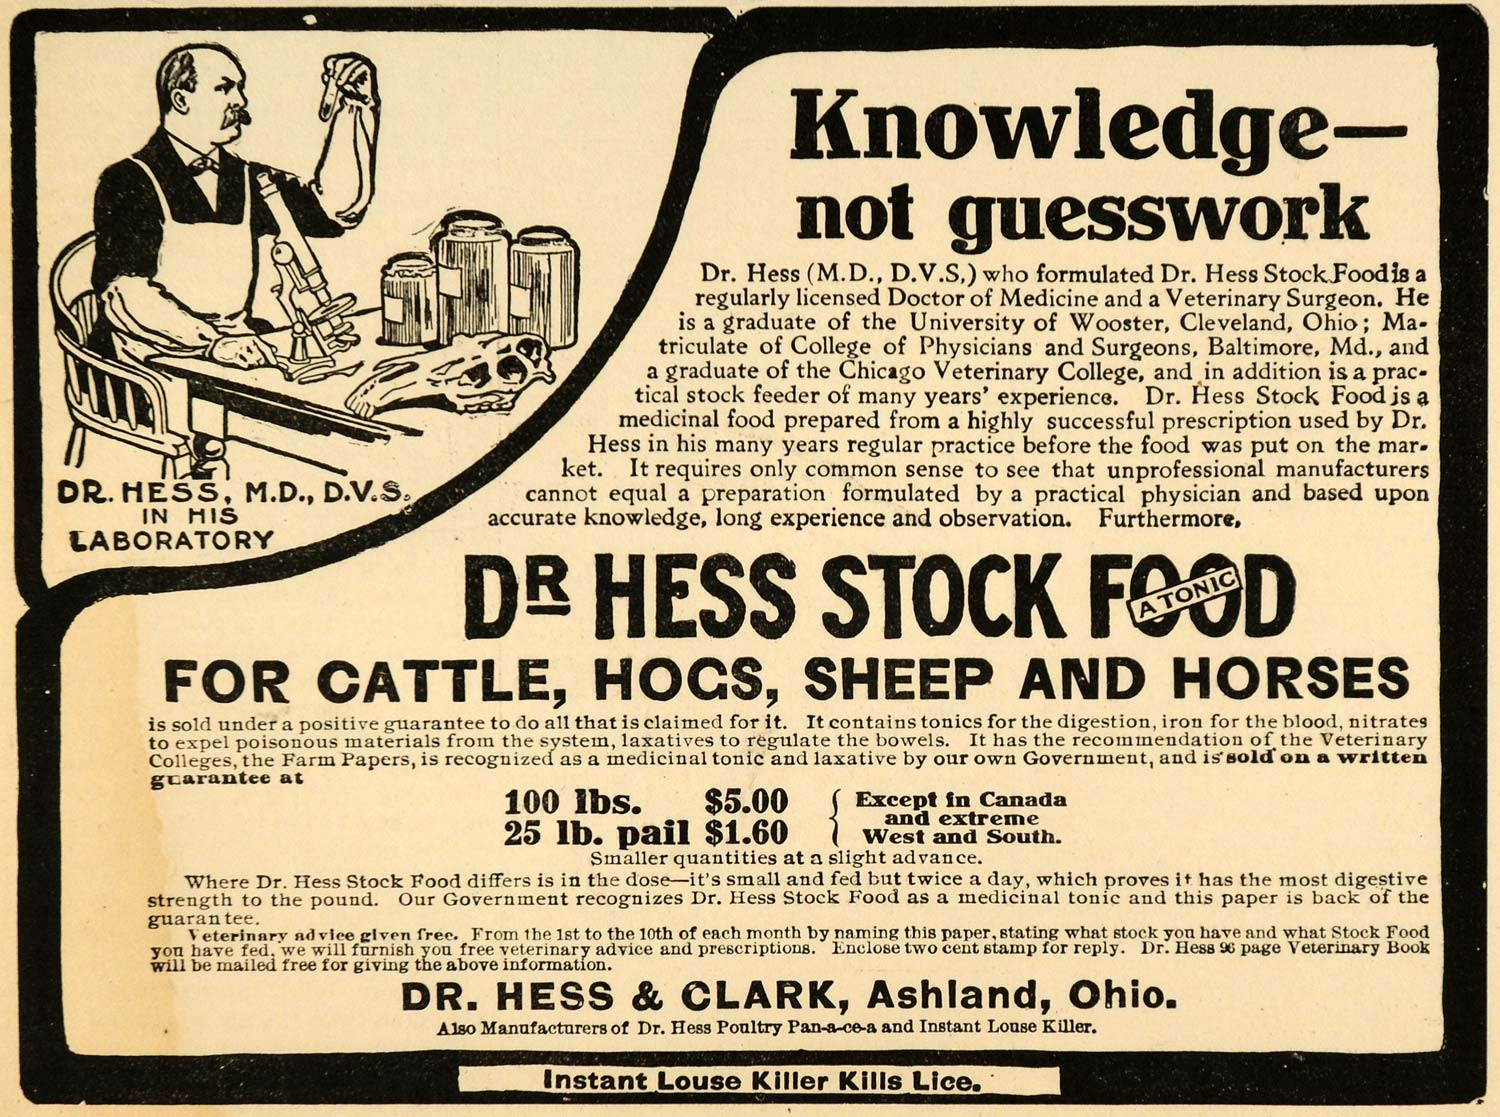 1907 Ad Tonic Stock Food Dr Hess & Clark Ashland Ohio - ORIGINAL ADVERTISING CG1